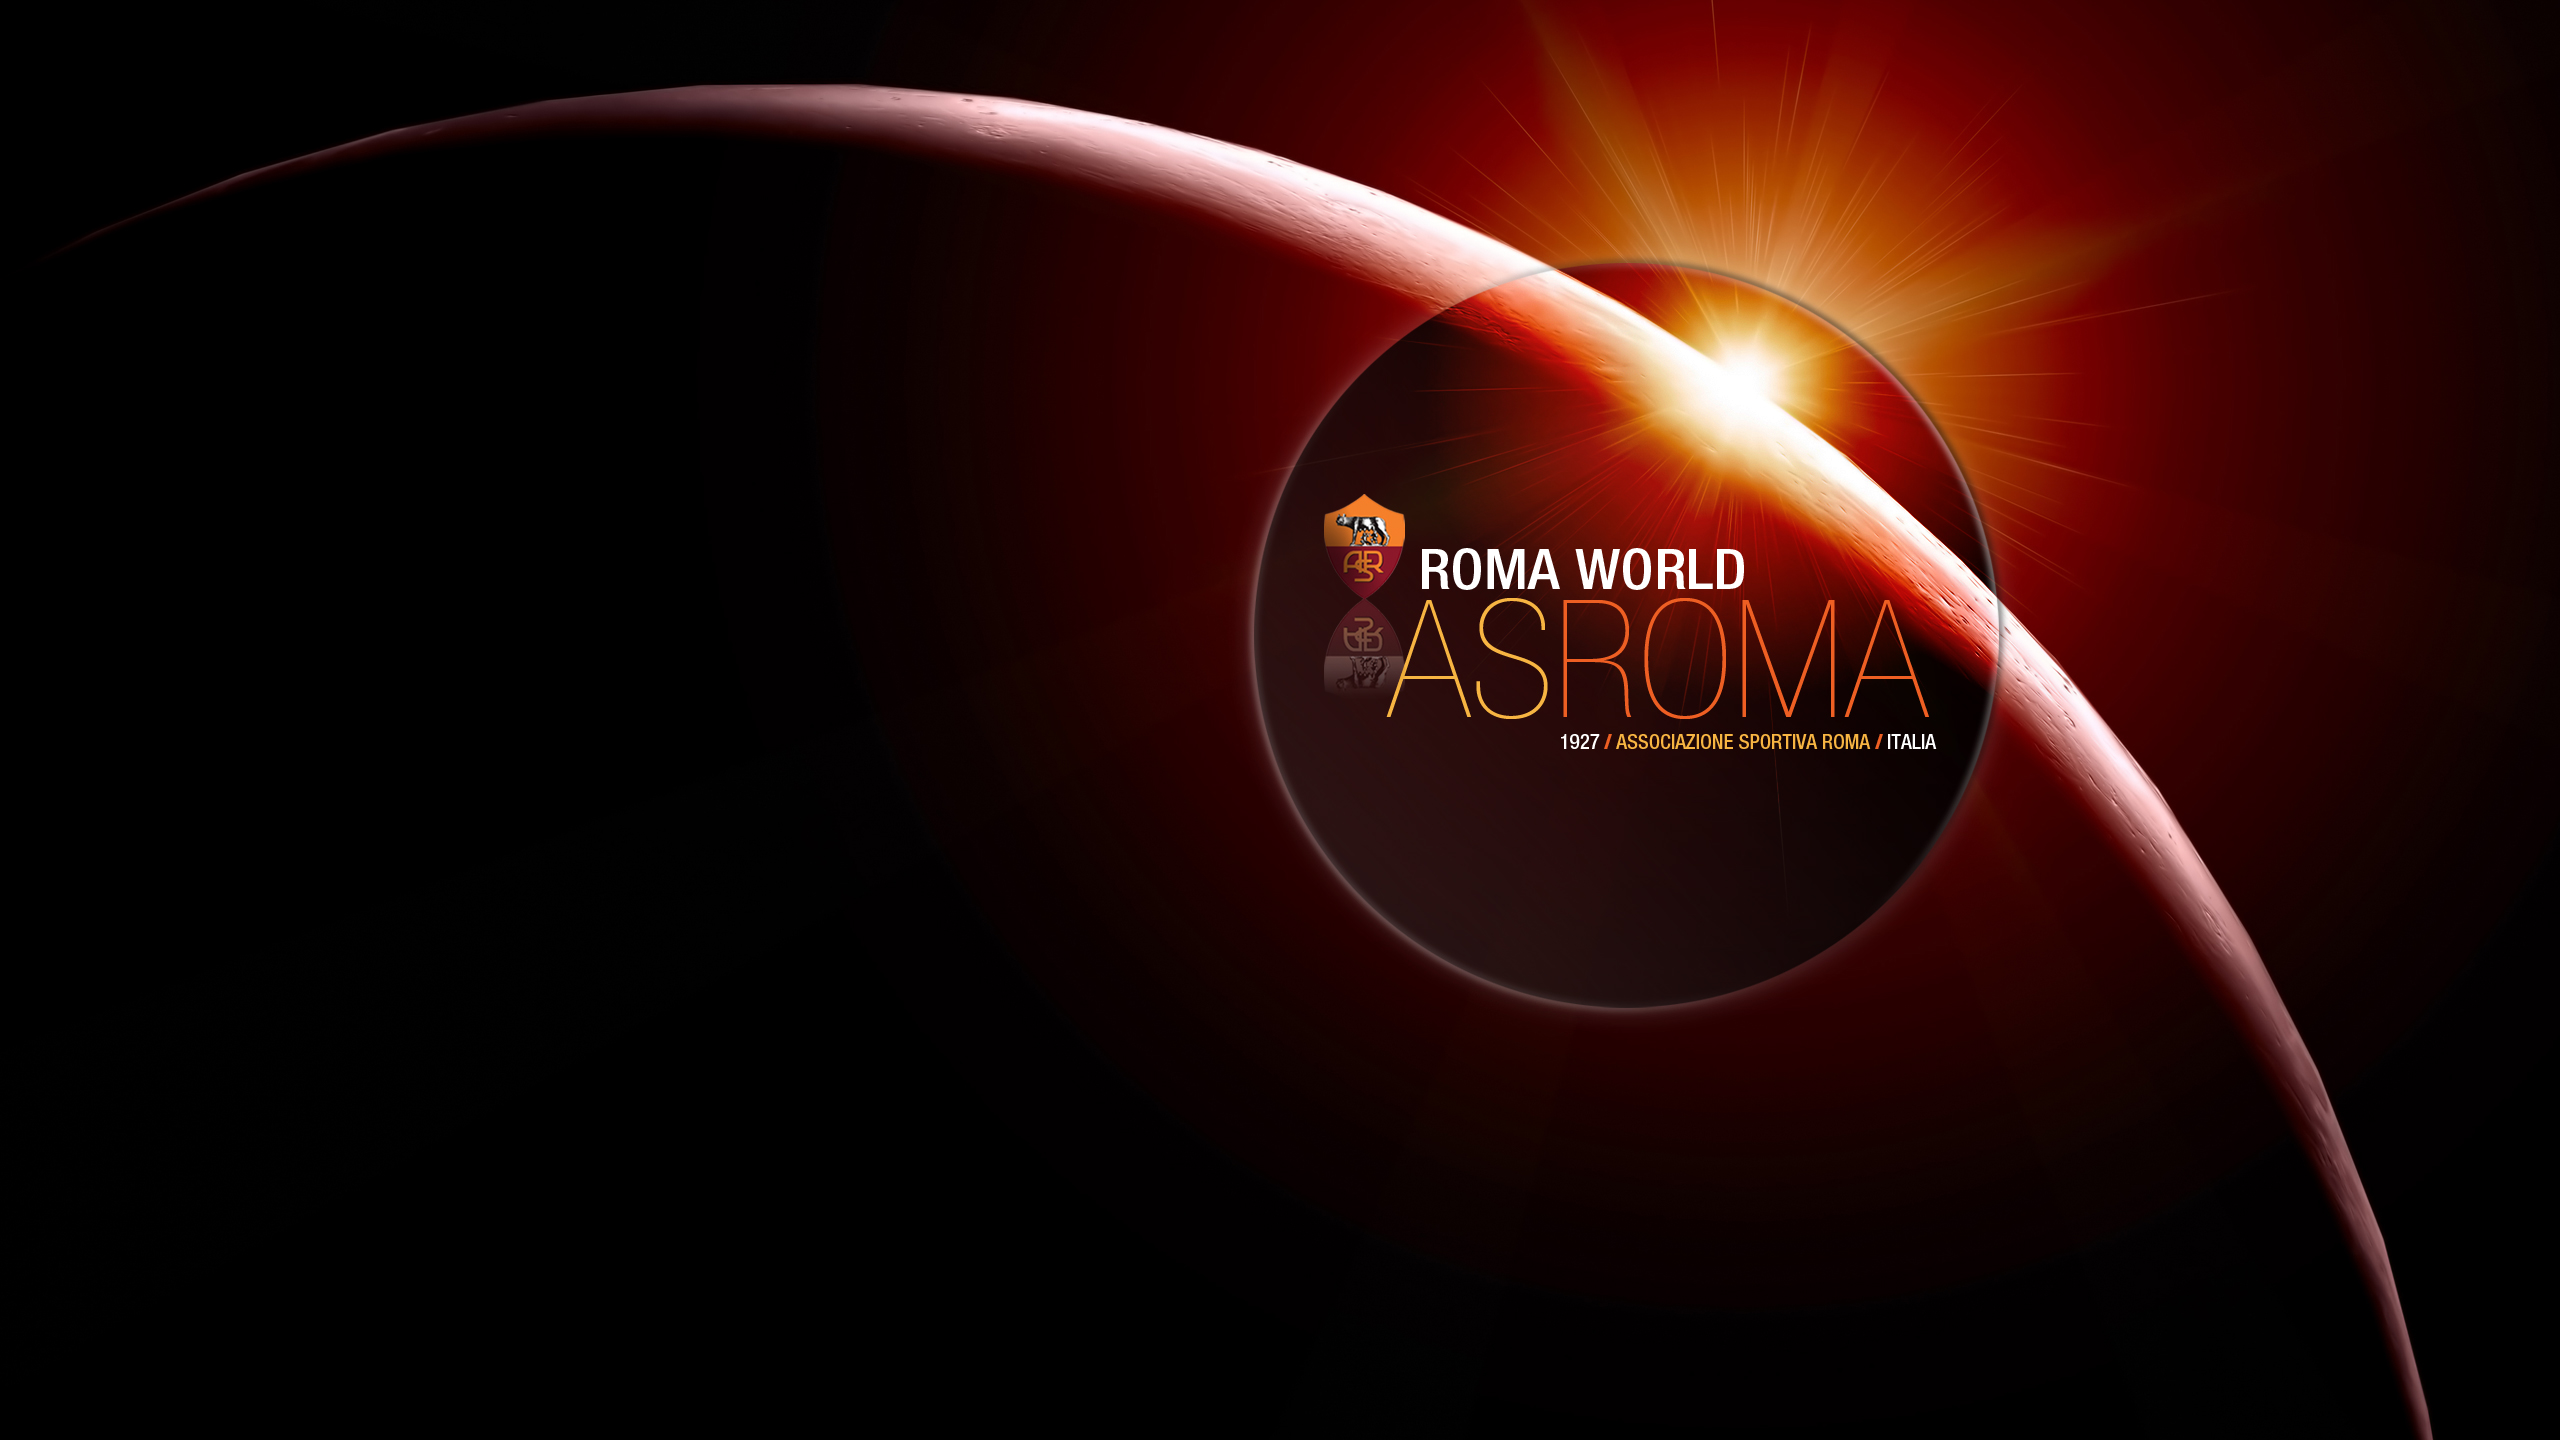 Roma World'- Wallpapers